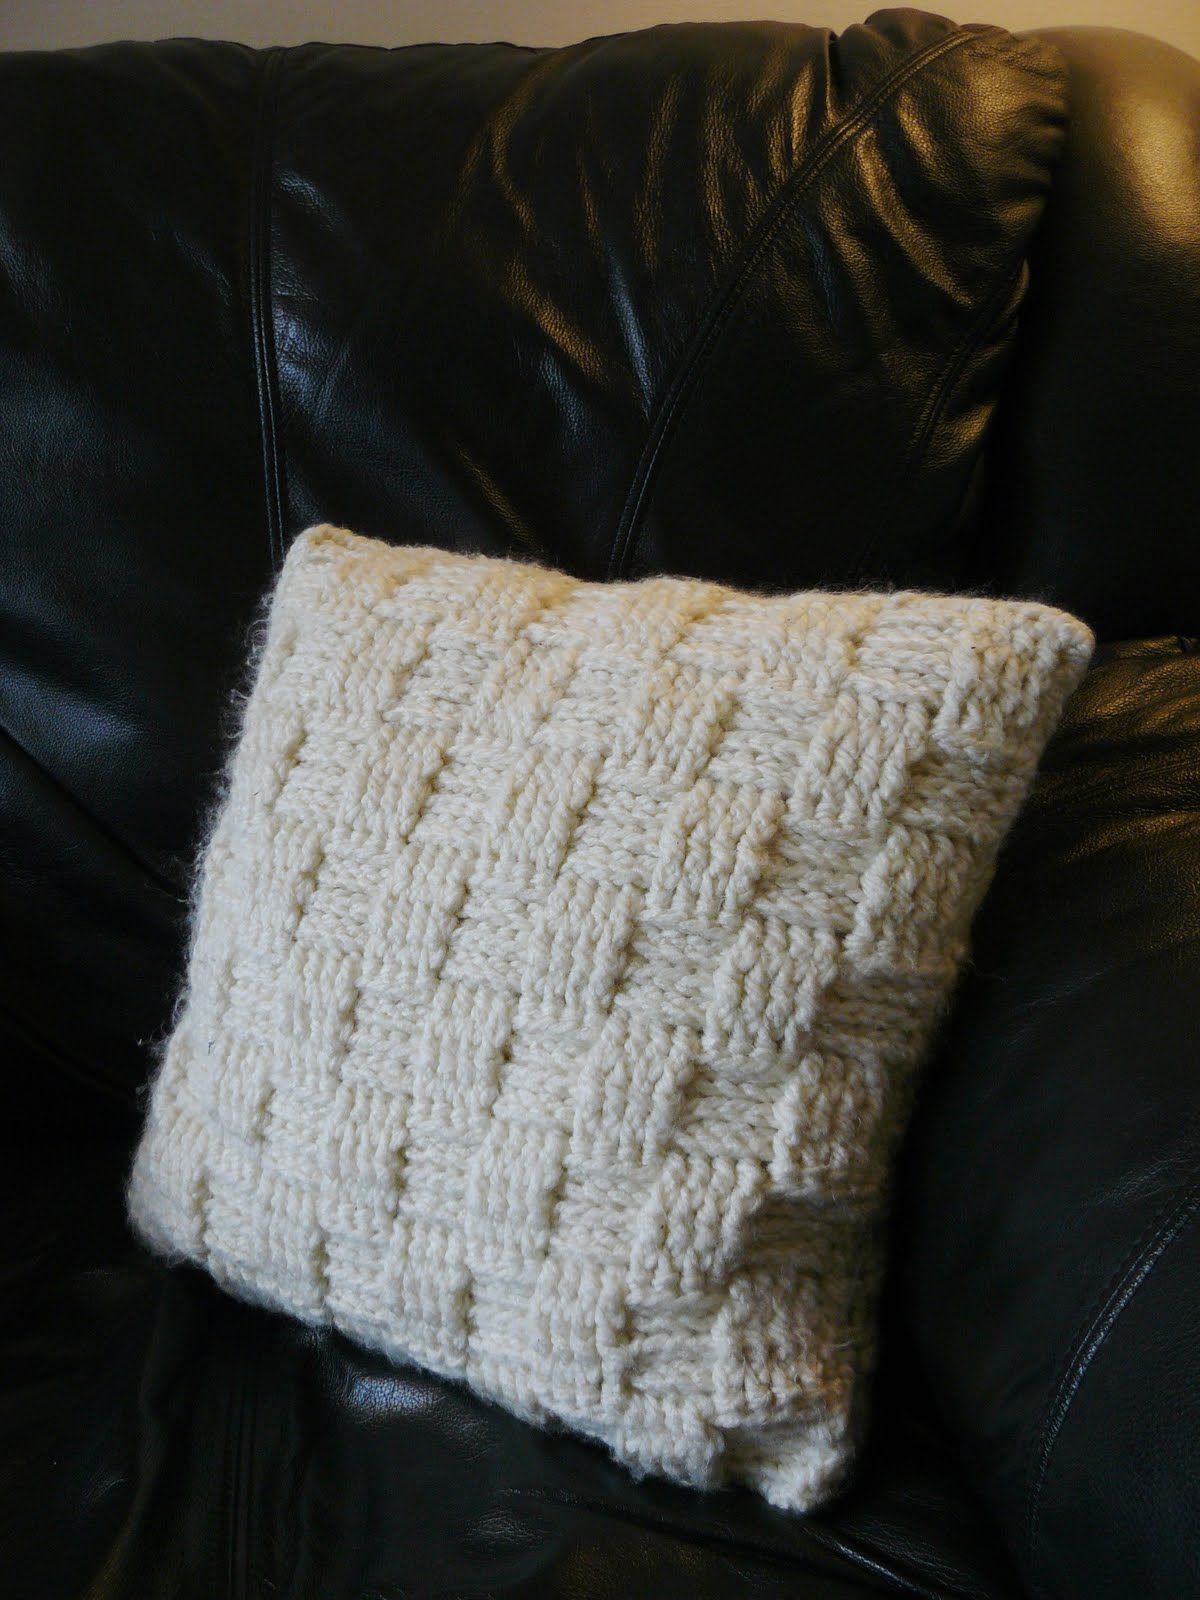 The Woven Home Crochet Projects Pillow